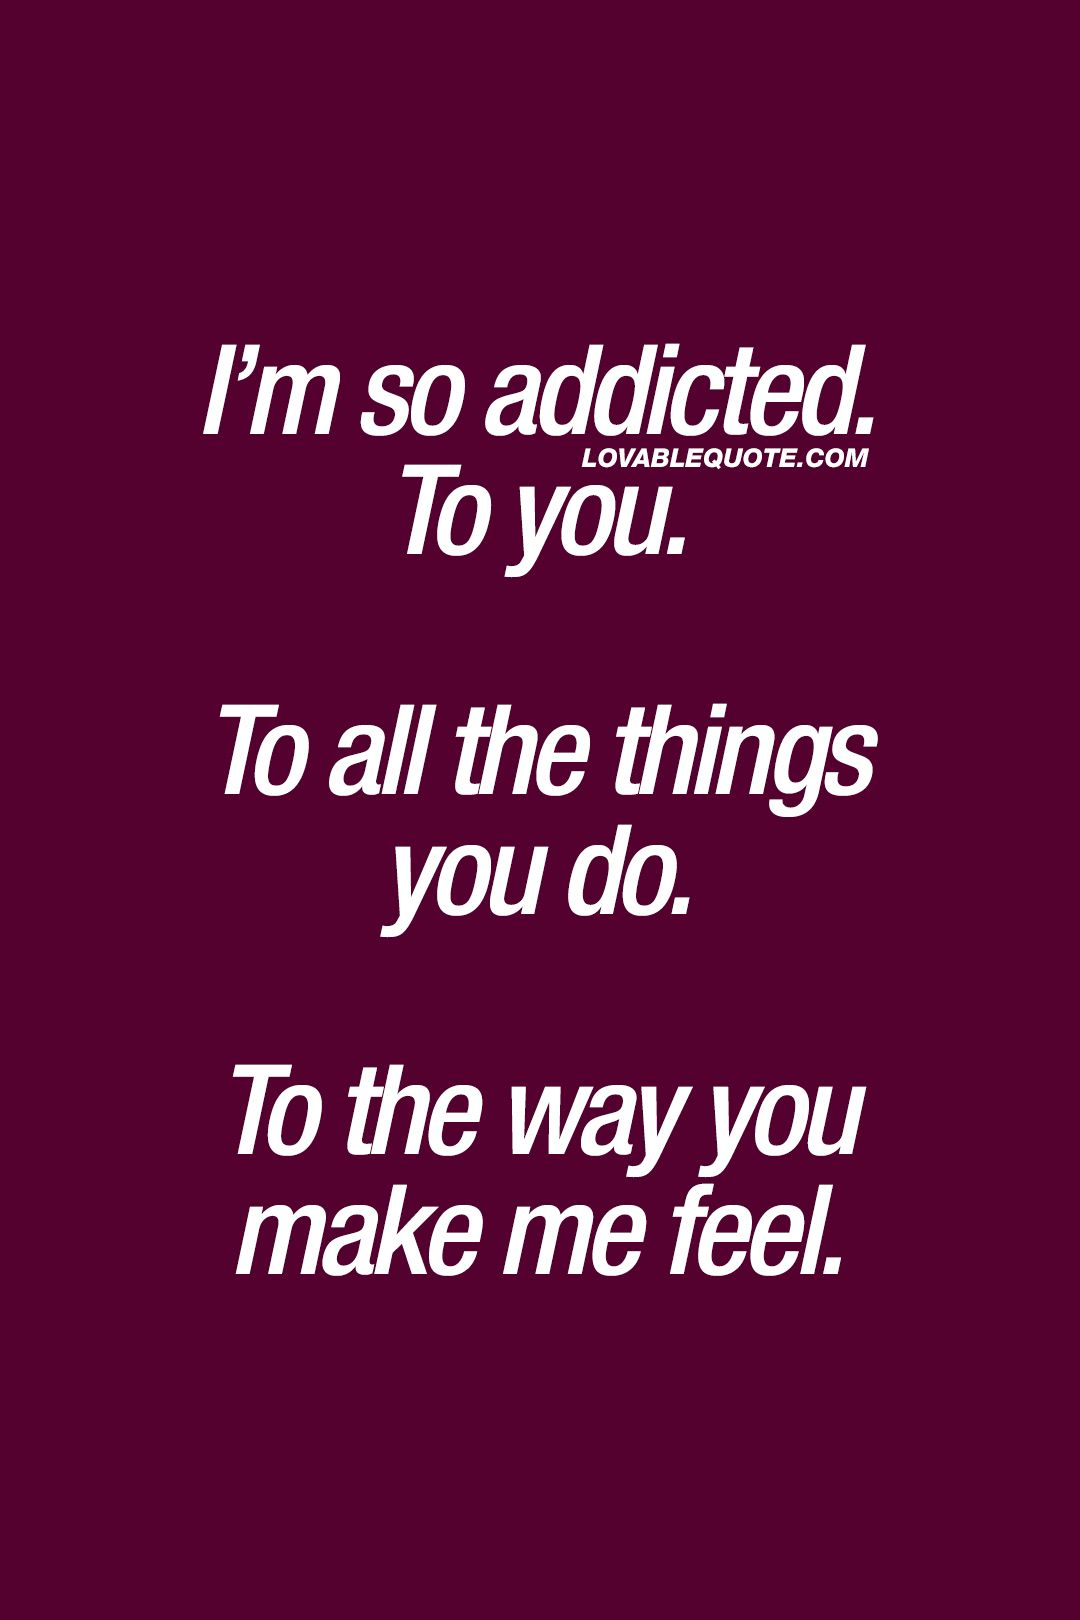 Addicted To You Quotes : addicted, quotes, Couple, Quotes:, Addicted., Things, Quotes,, Quotes